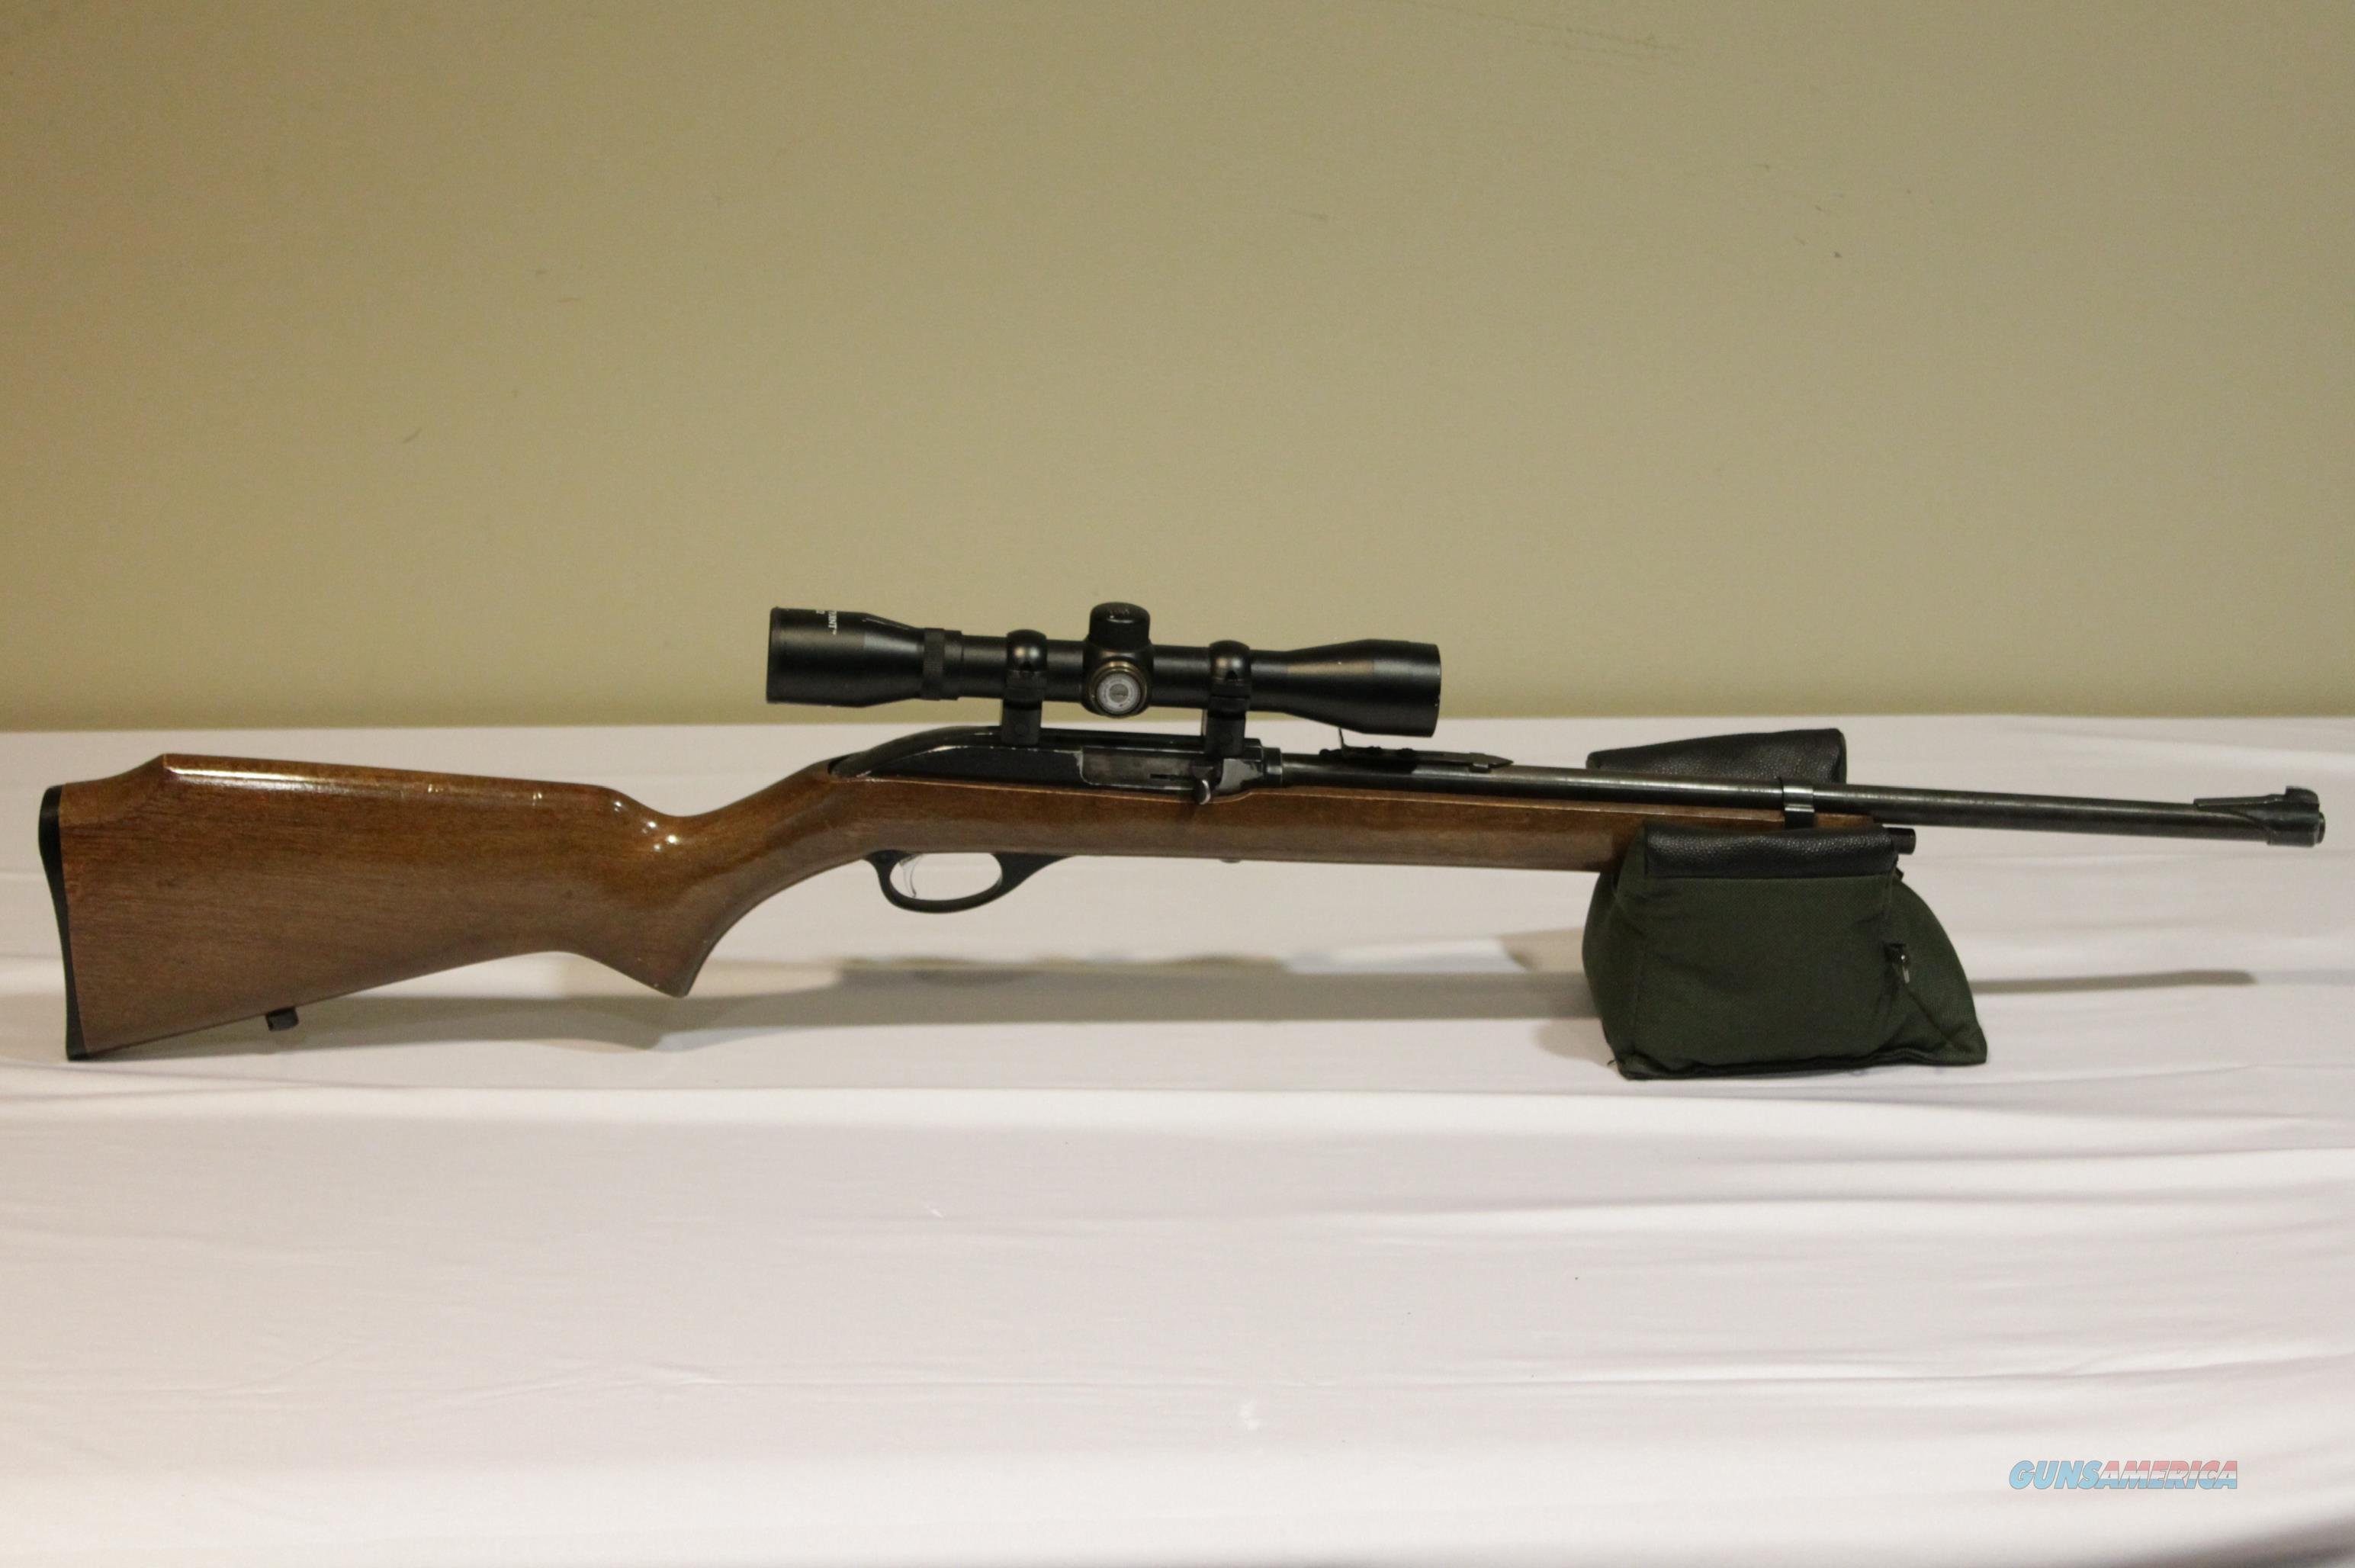 Marlin Firearms Glenfield Mod. 75 .22L.R. Rifle + Center Point 4x32 Scope  Guns > Rifles > Marlin Rifles > Modern > Semi-auto